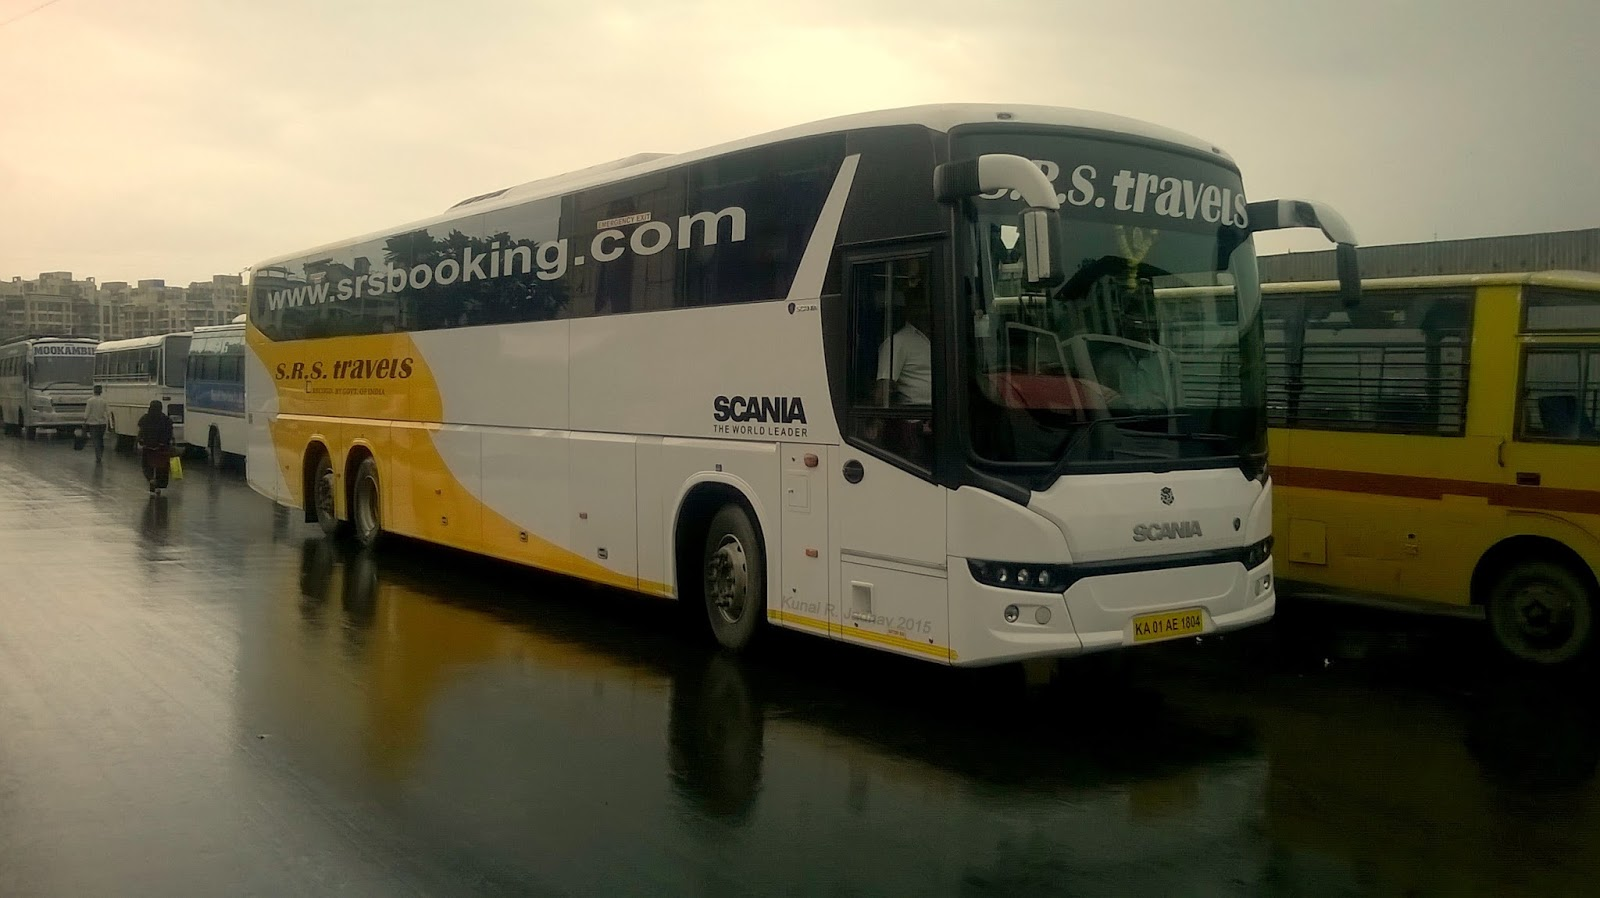 A Scania Volvo Mercedes Benz Bus And Vehicle Enthusiast From India